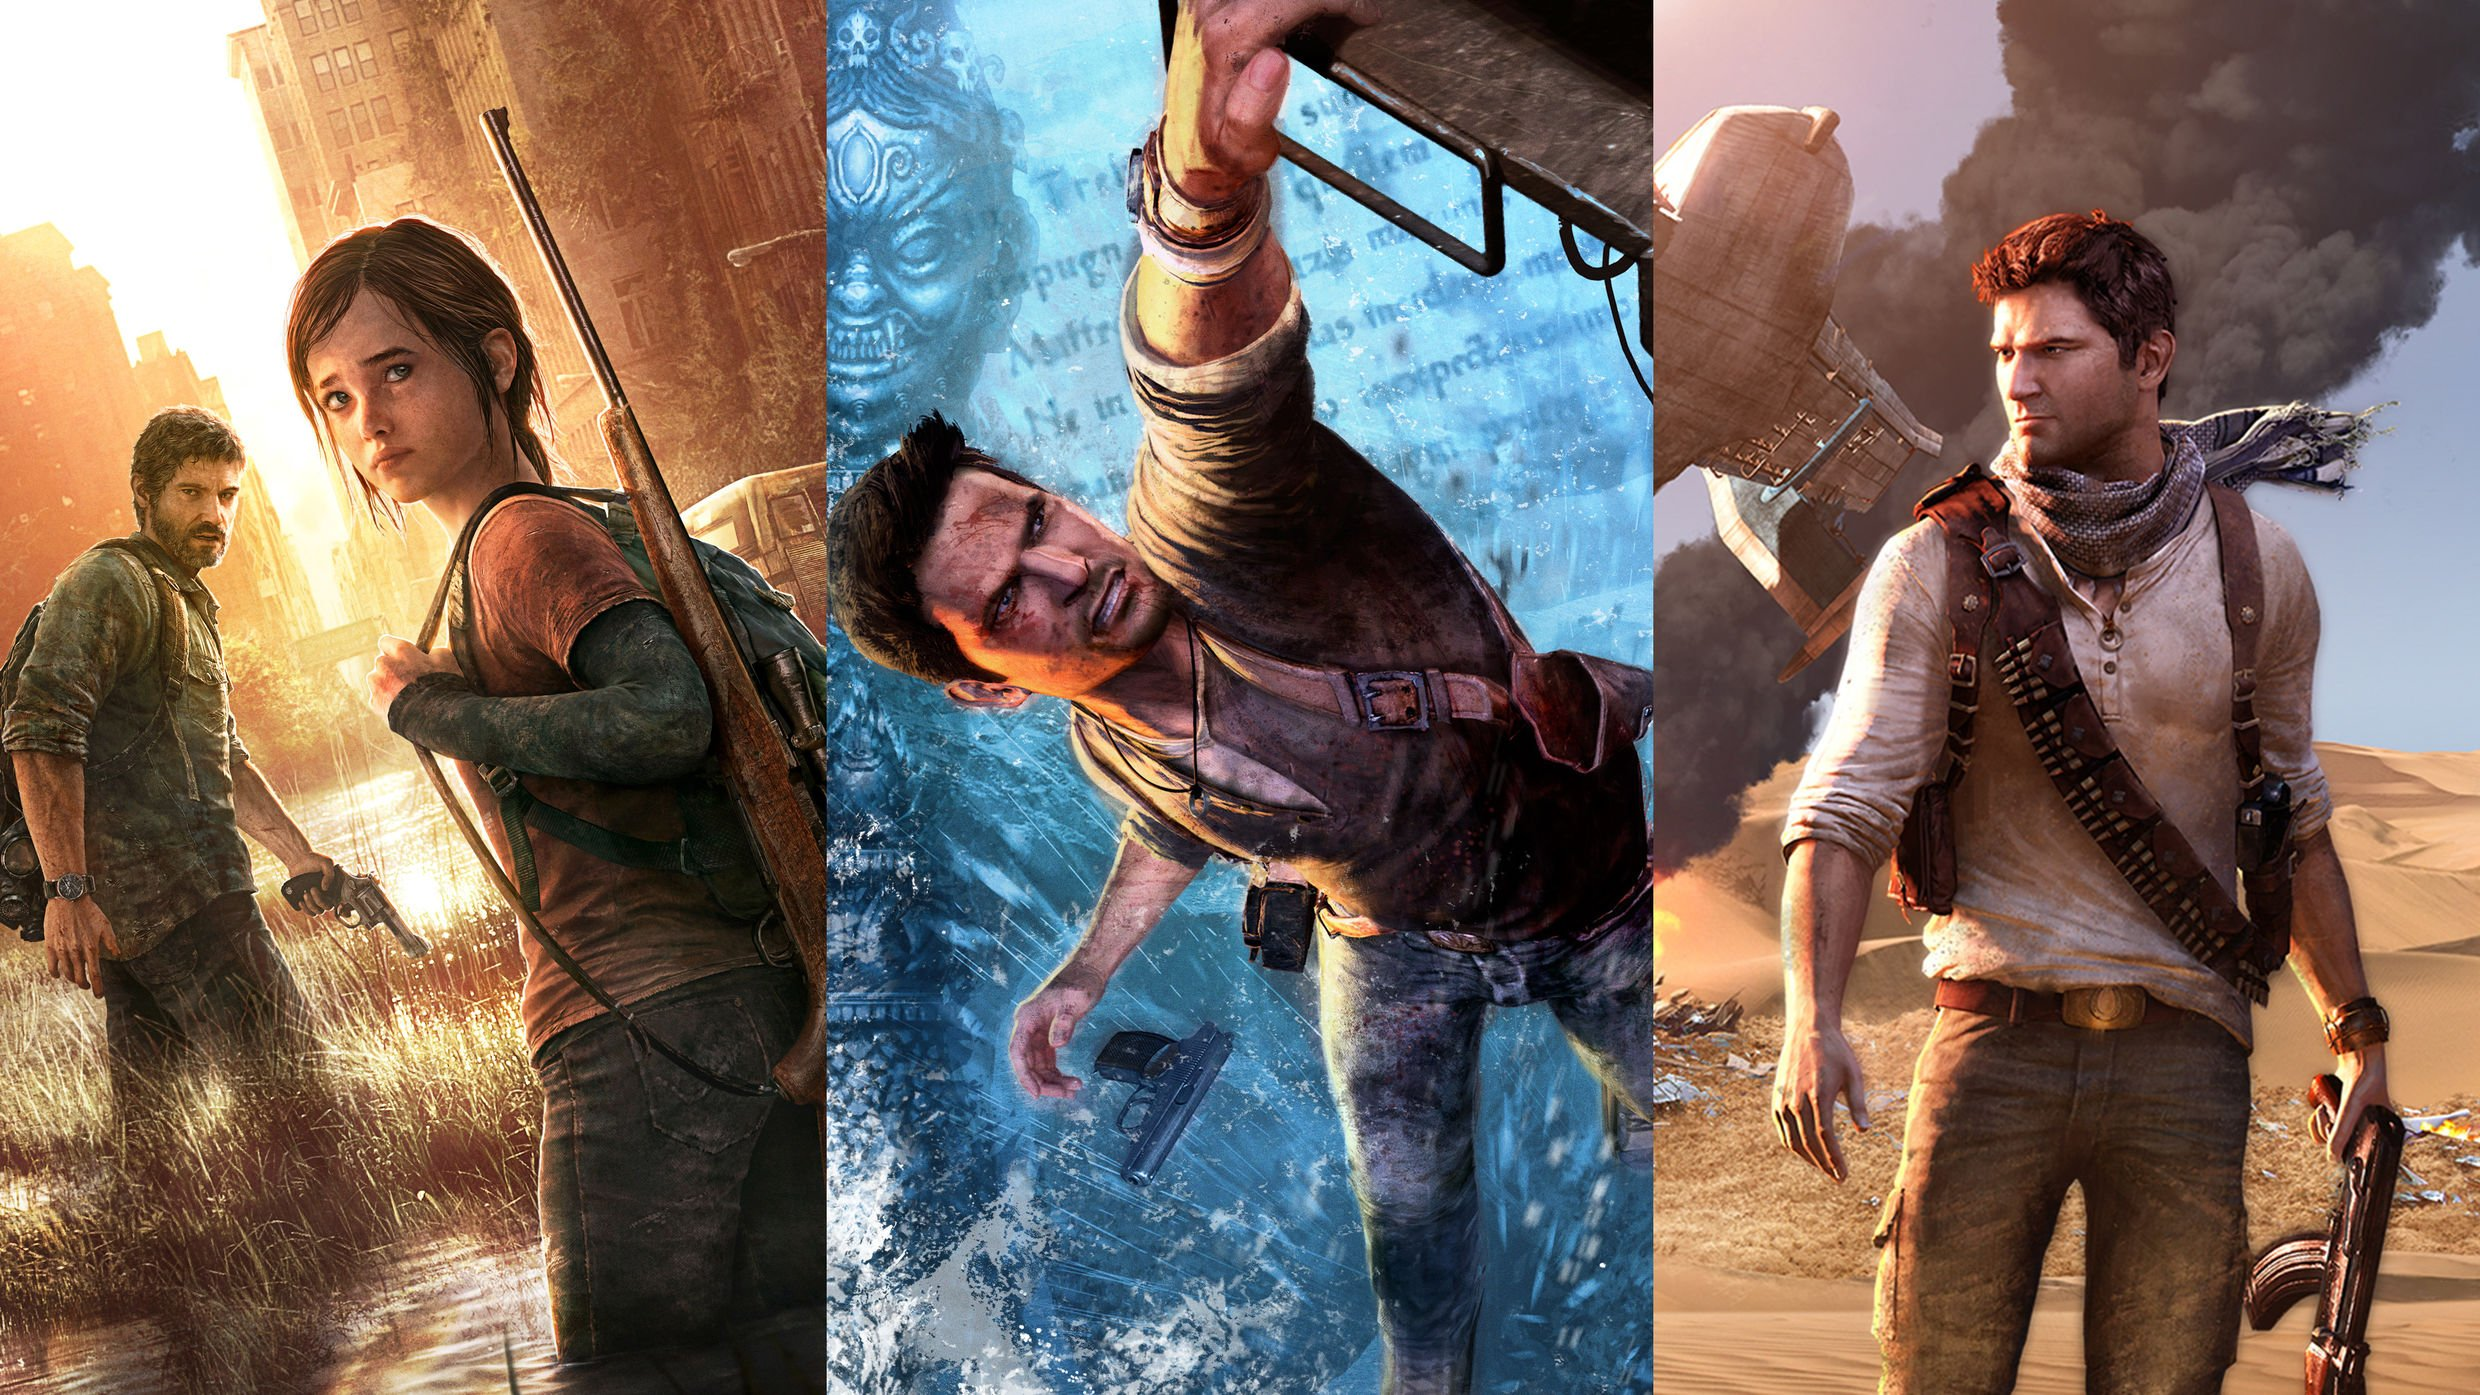 Naughty Dog annonce la fin des services en ligne pour Uncharted 2, Uncharted 3, et The Last Of Us